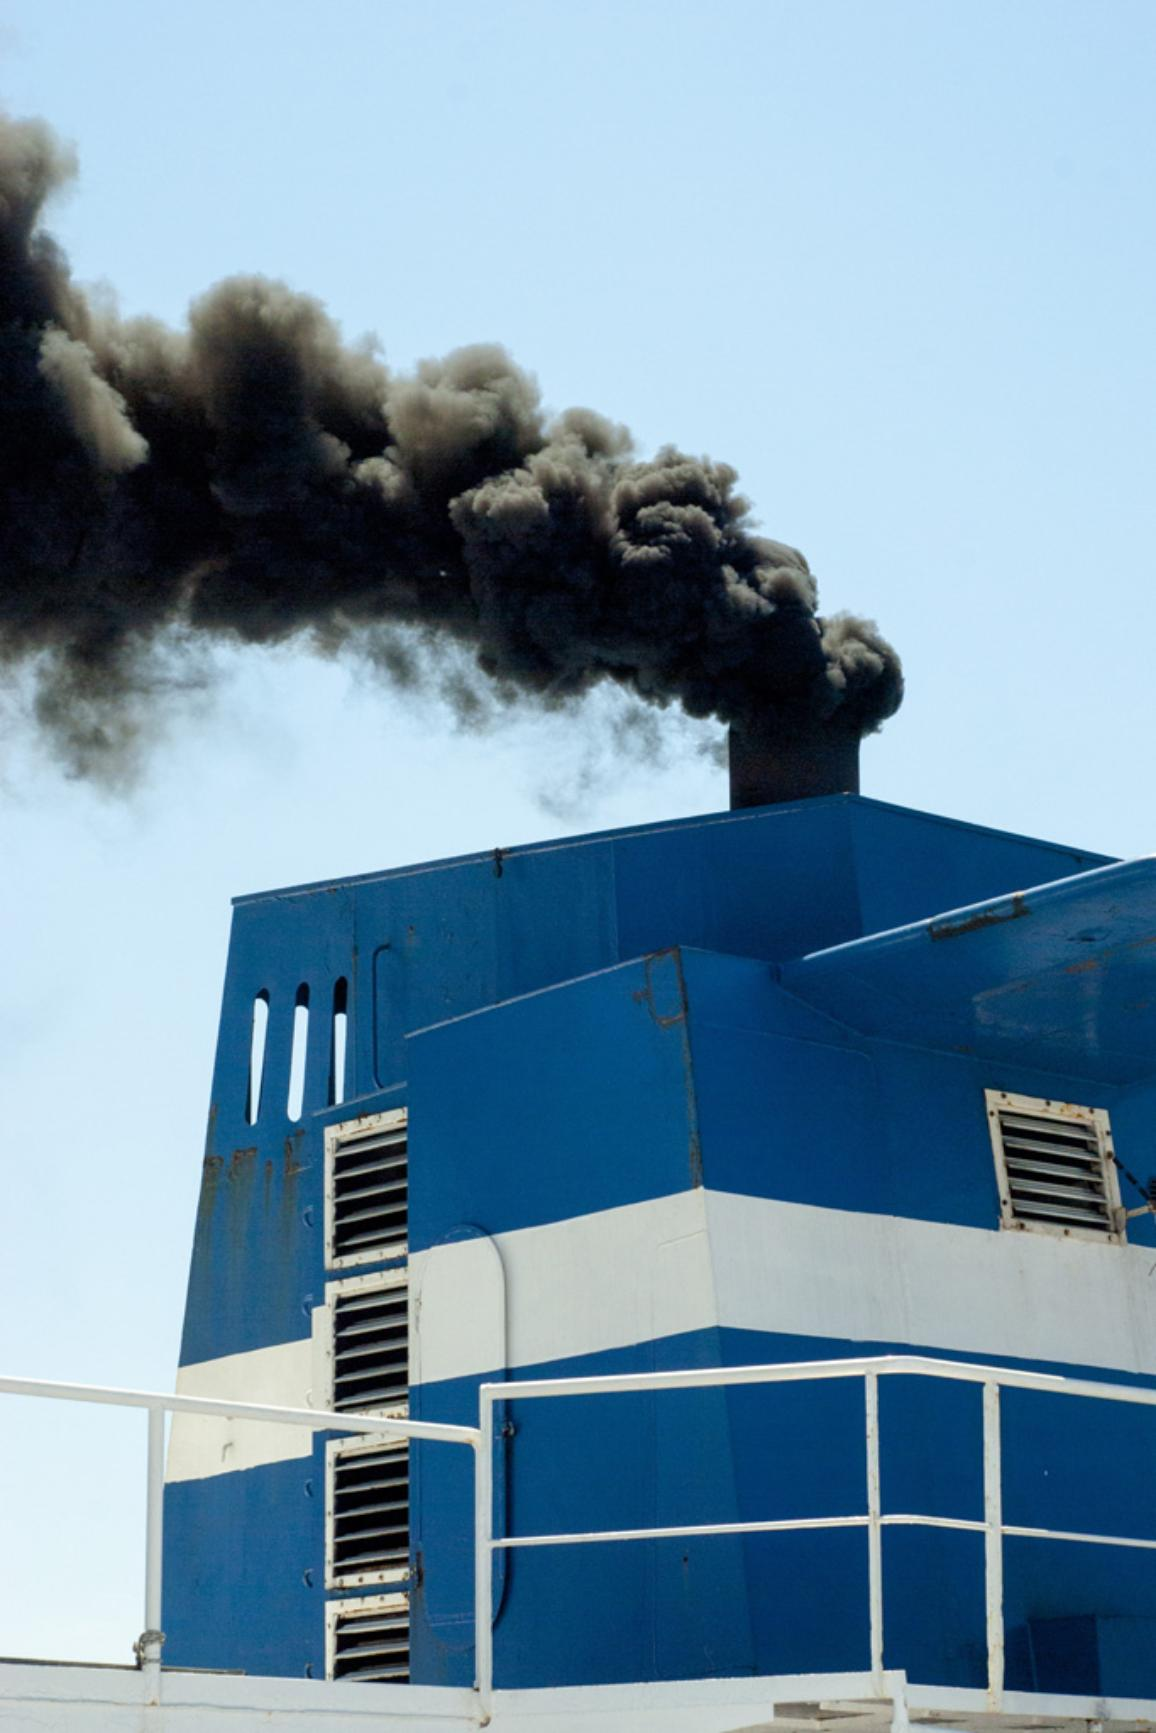 Ship with smoke emission and air pollution from the chimney ©AP Images/EP